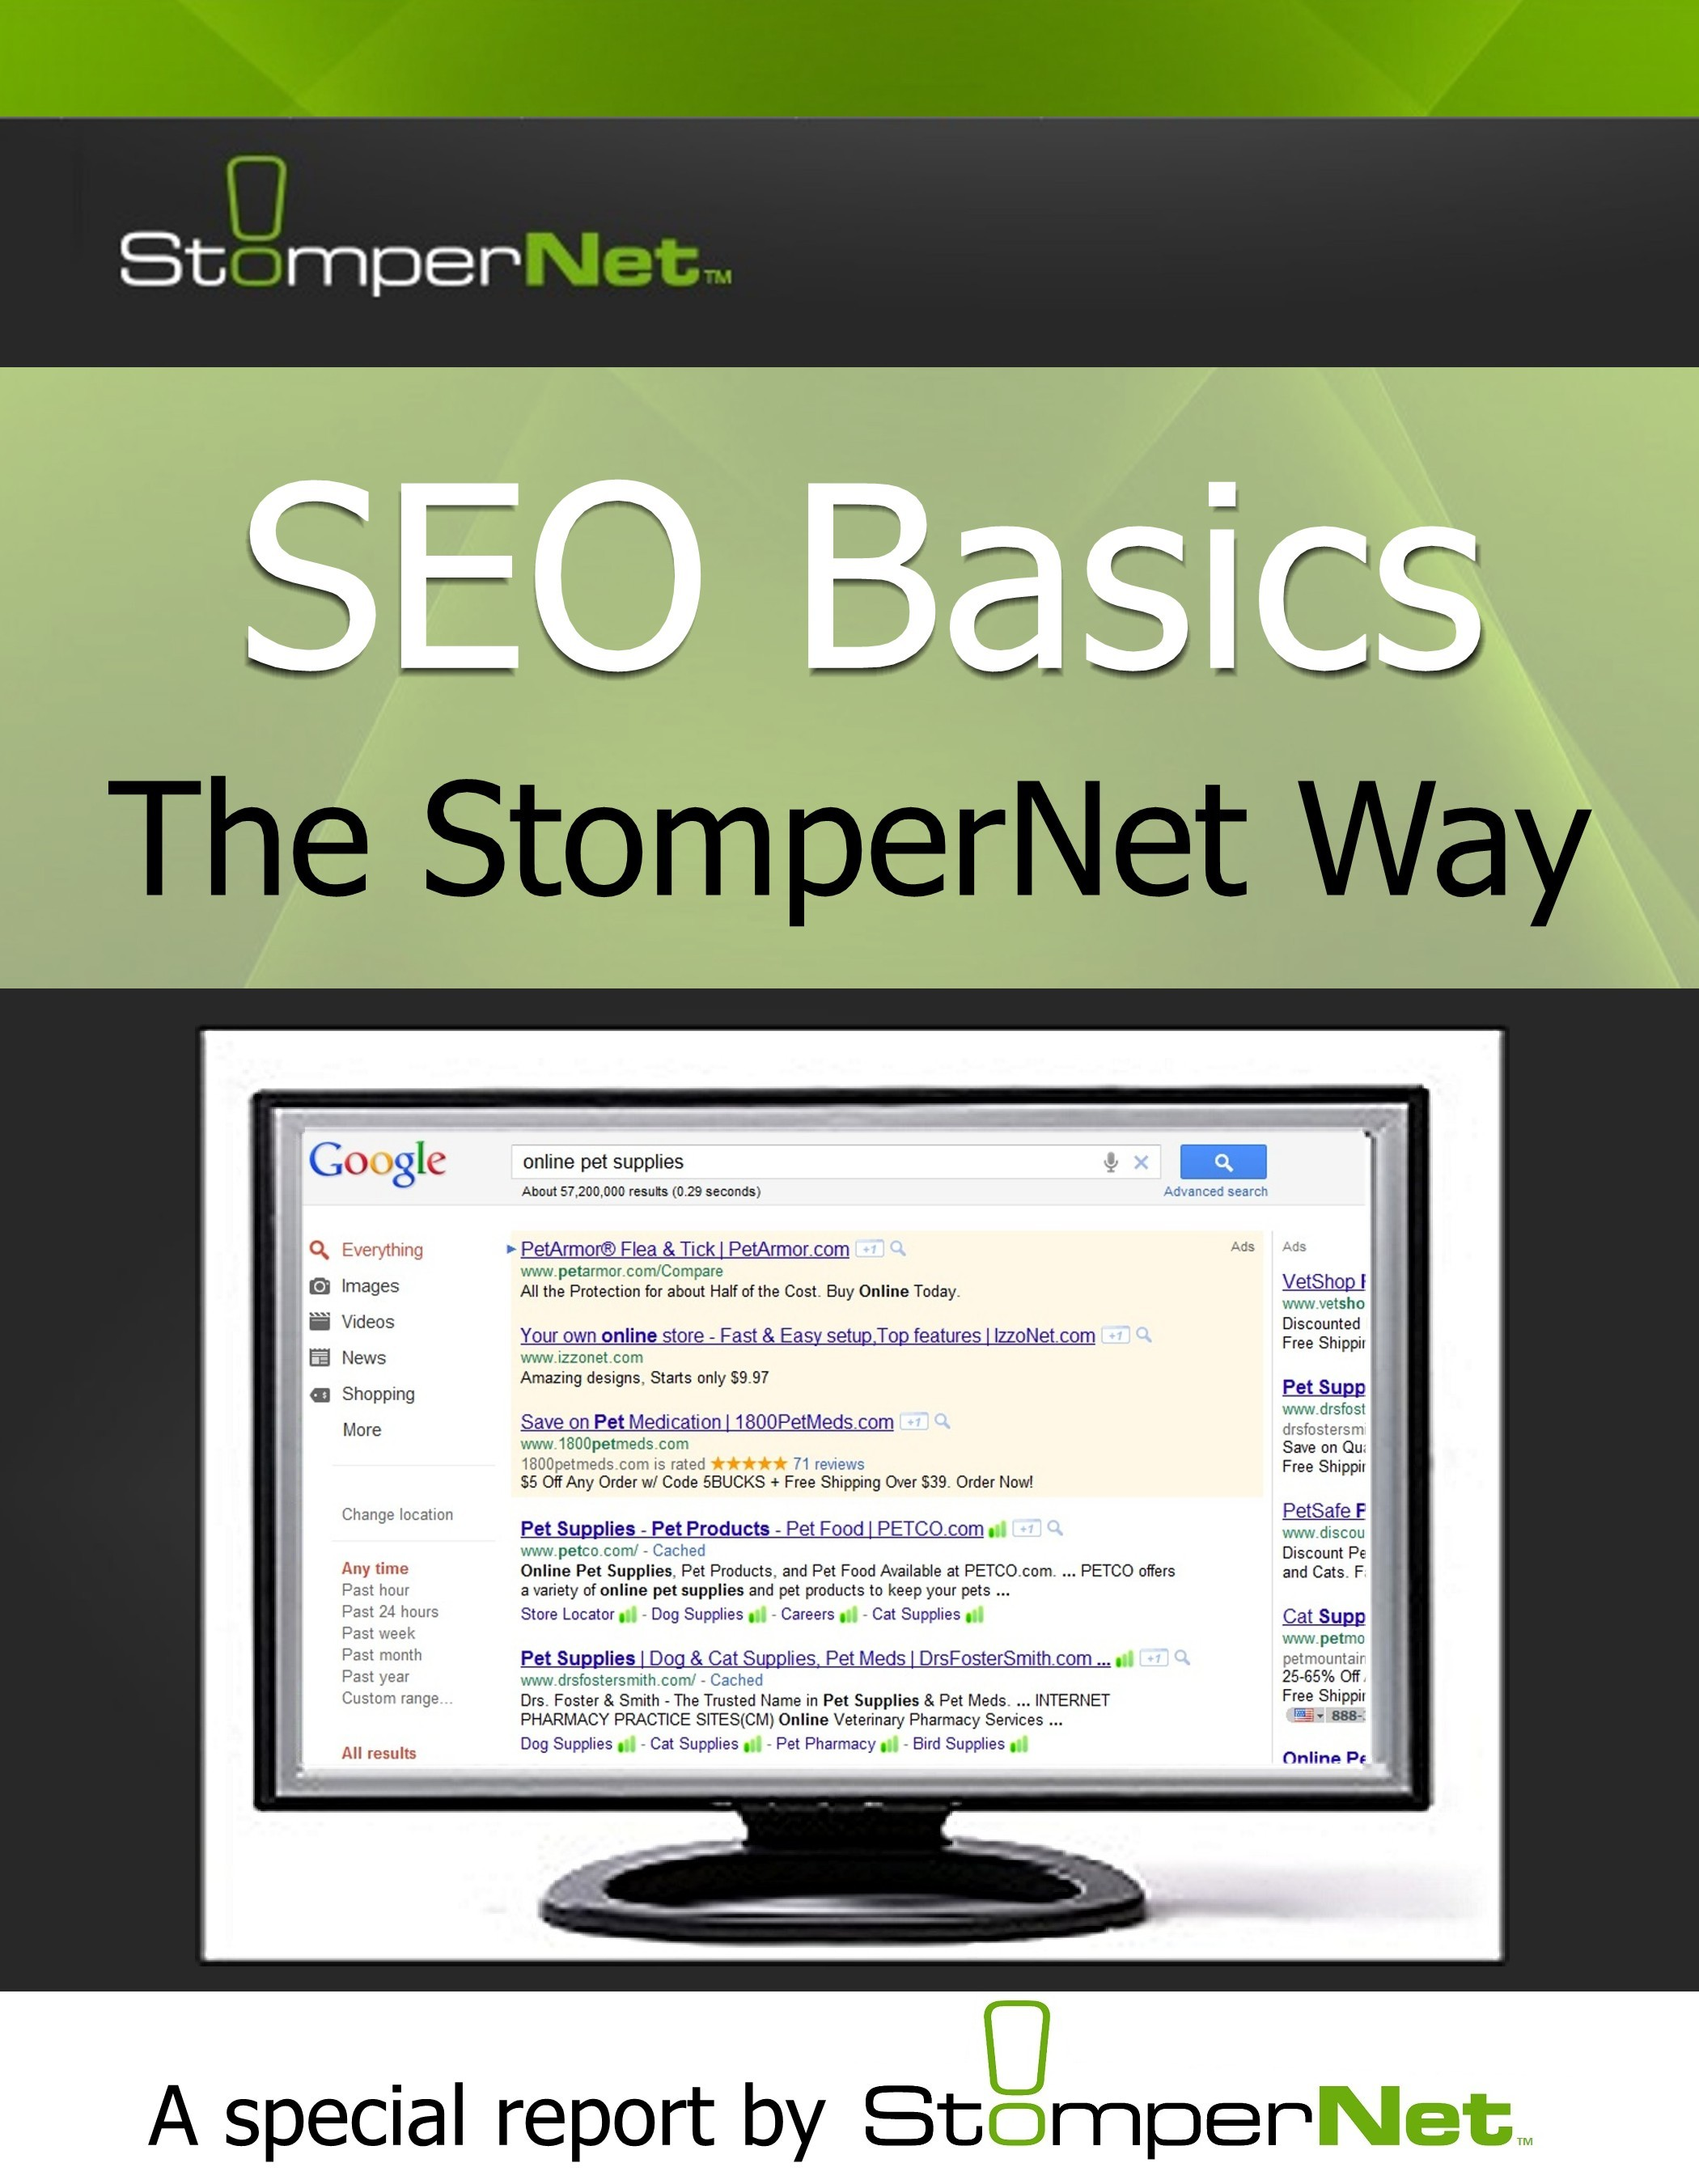 SEO Basics: The StomperNet Way